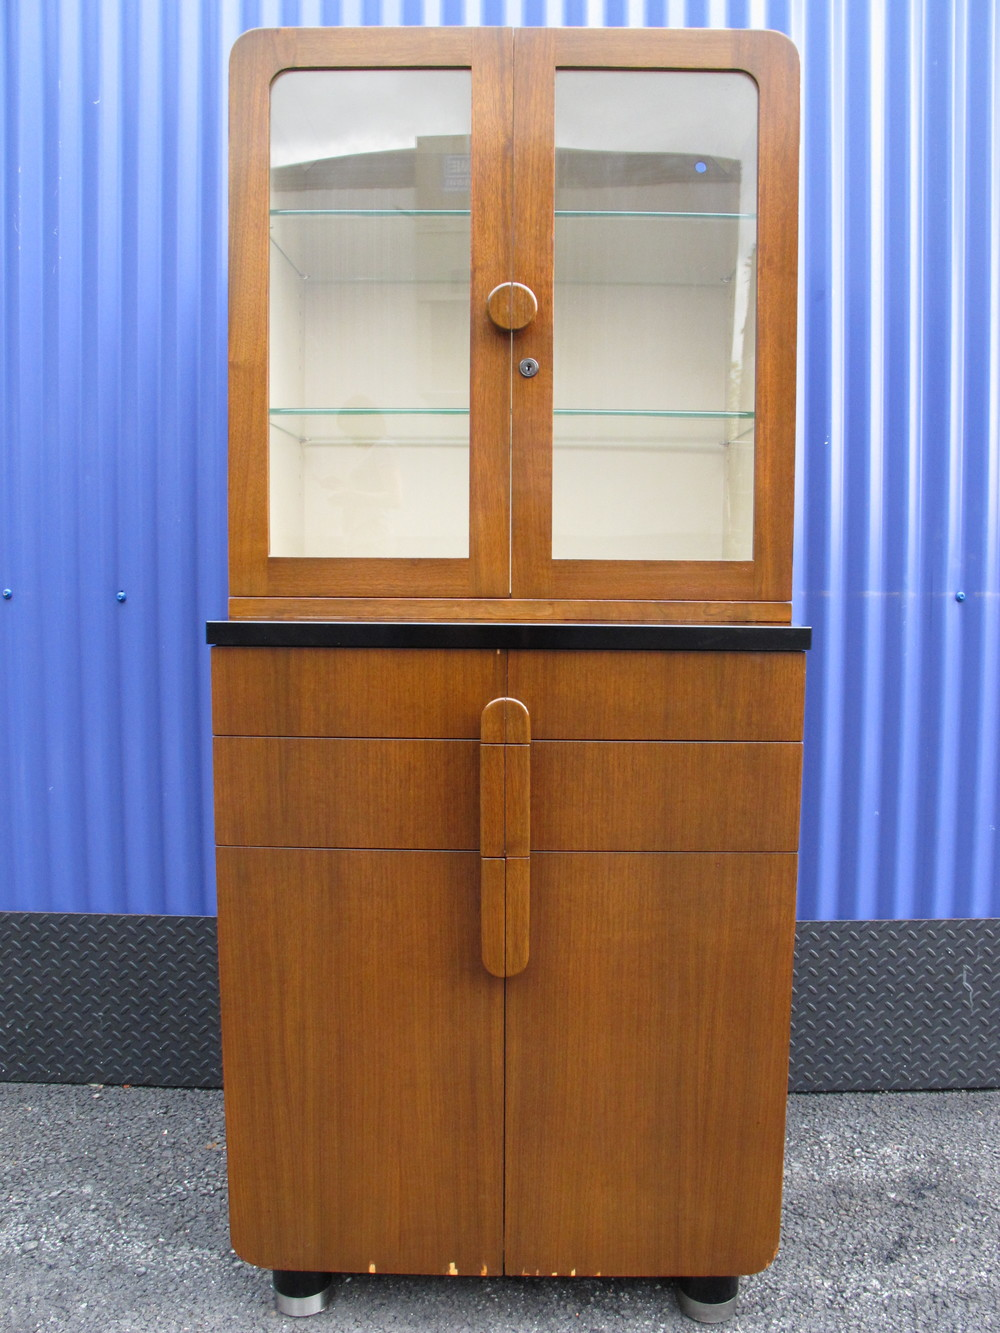 DECO HAMILTON GLASS-DOORED CABINET